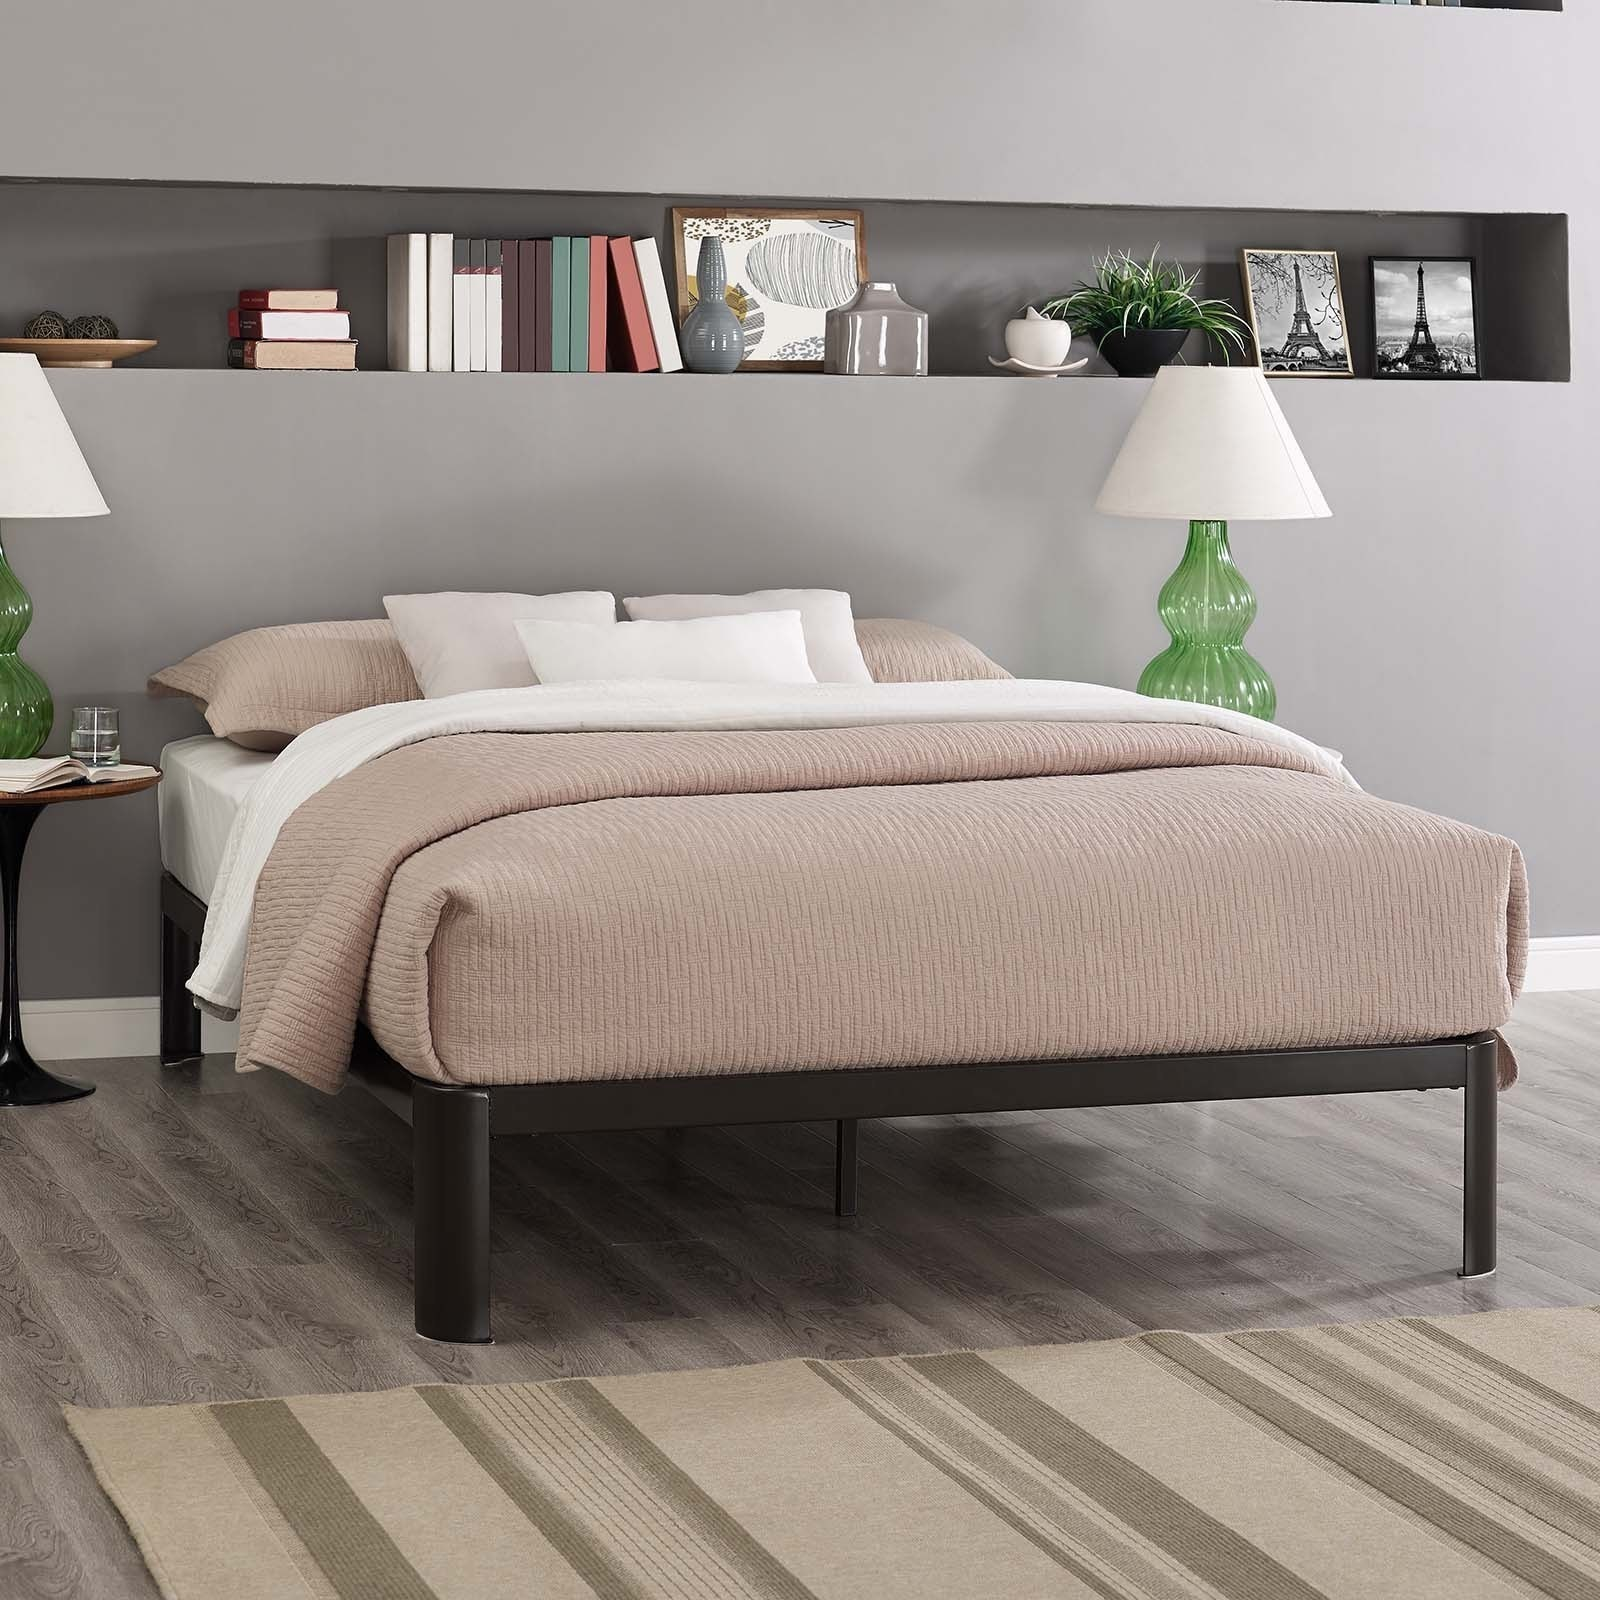 bac536eada6a04 Shop Corinne Steel Full-Size Platform Bed - On Sale - Free Shipping Today -  Overstock - 14255977